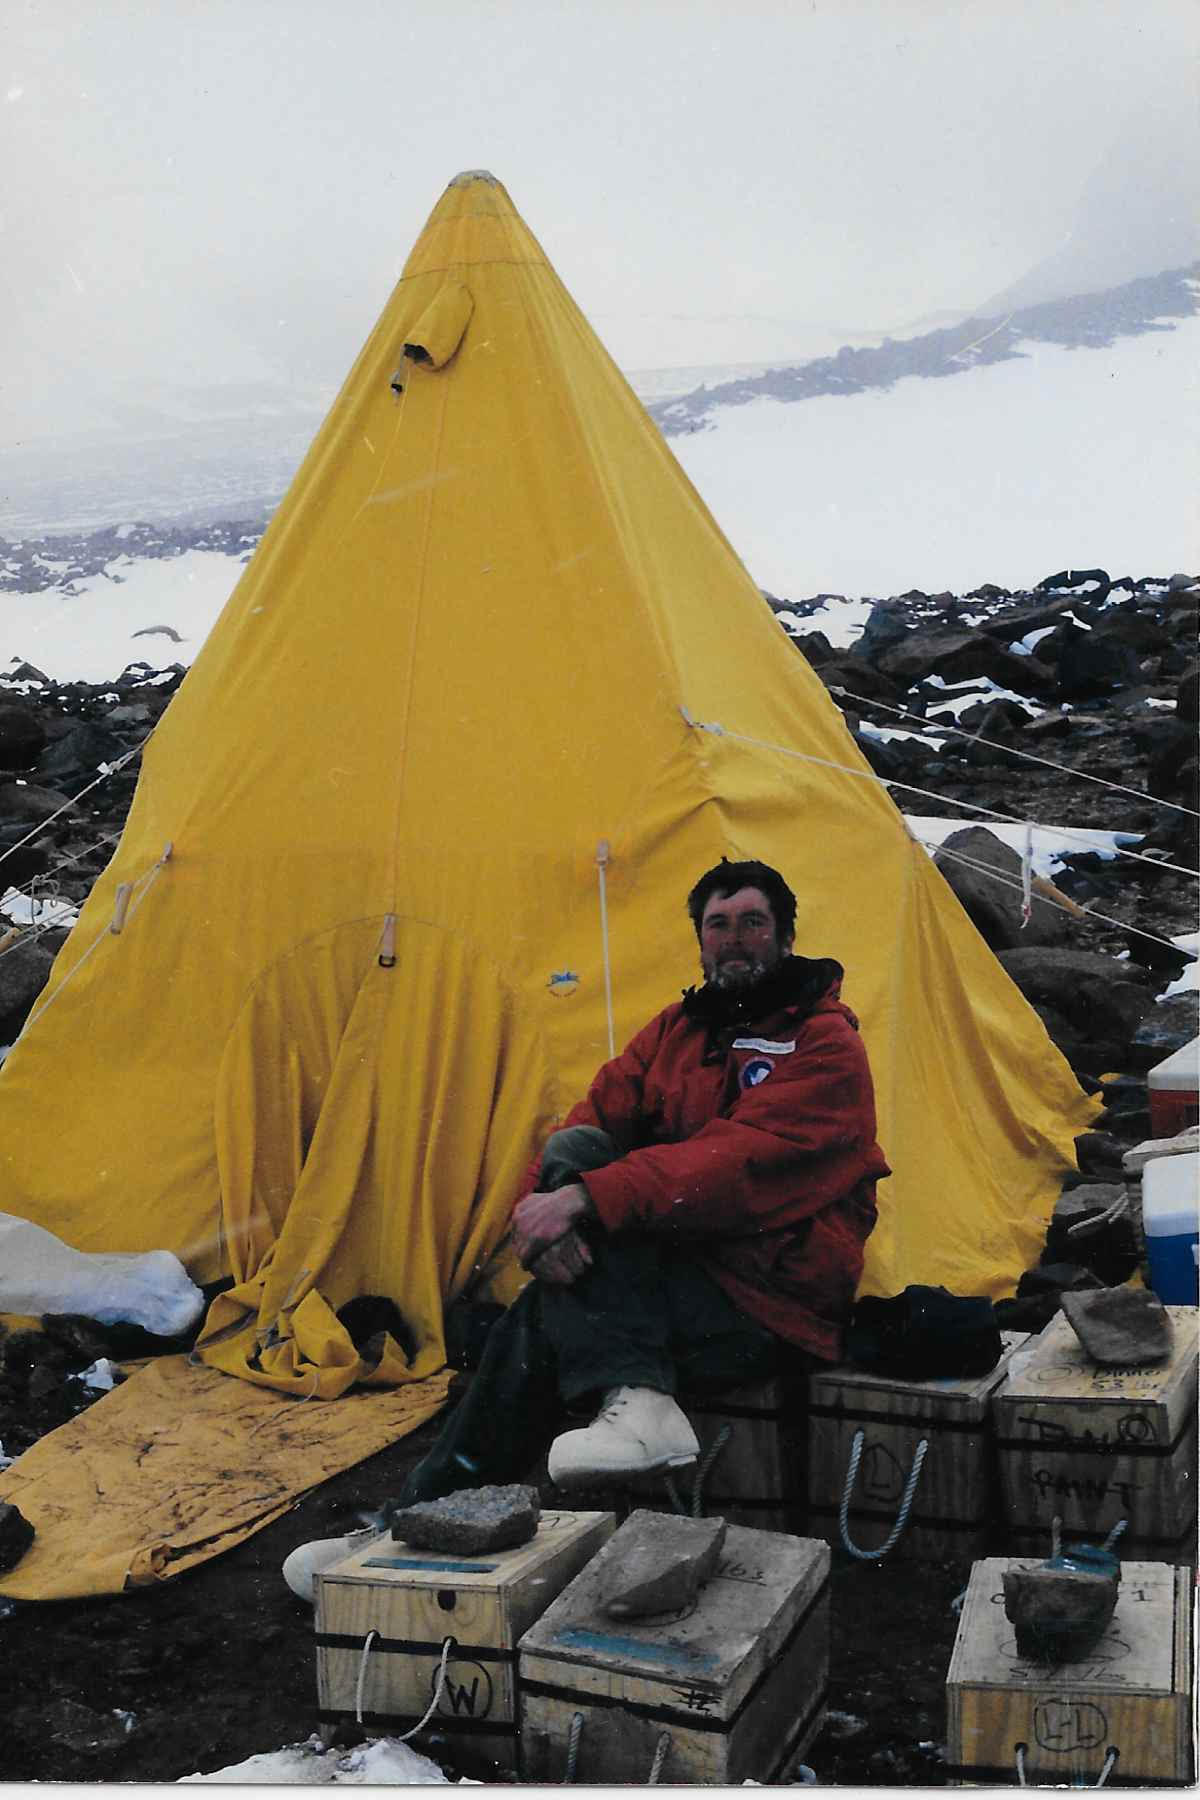 Brett on a field expedition conducting research on climate change in Antarctica, circa 2000.